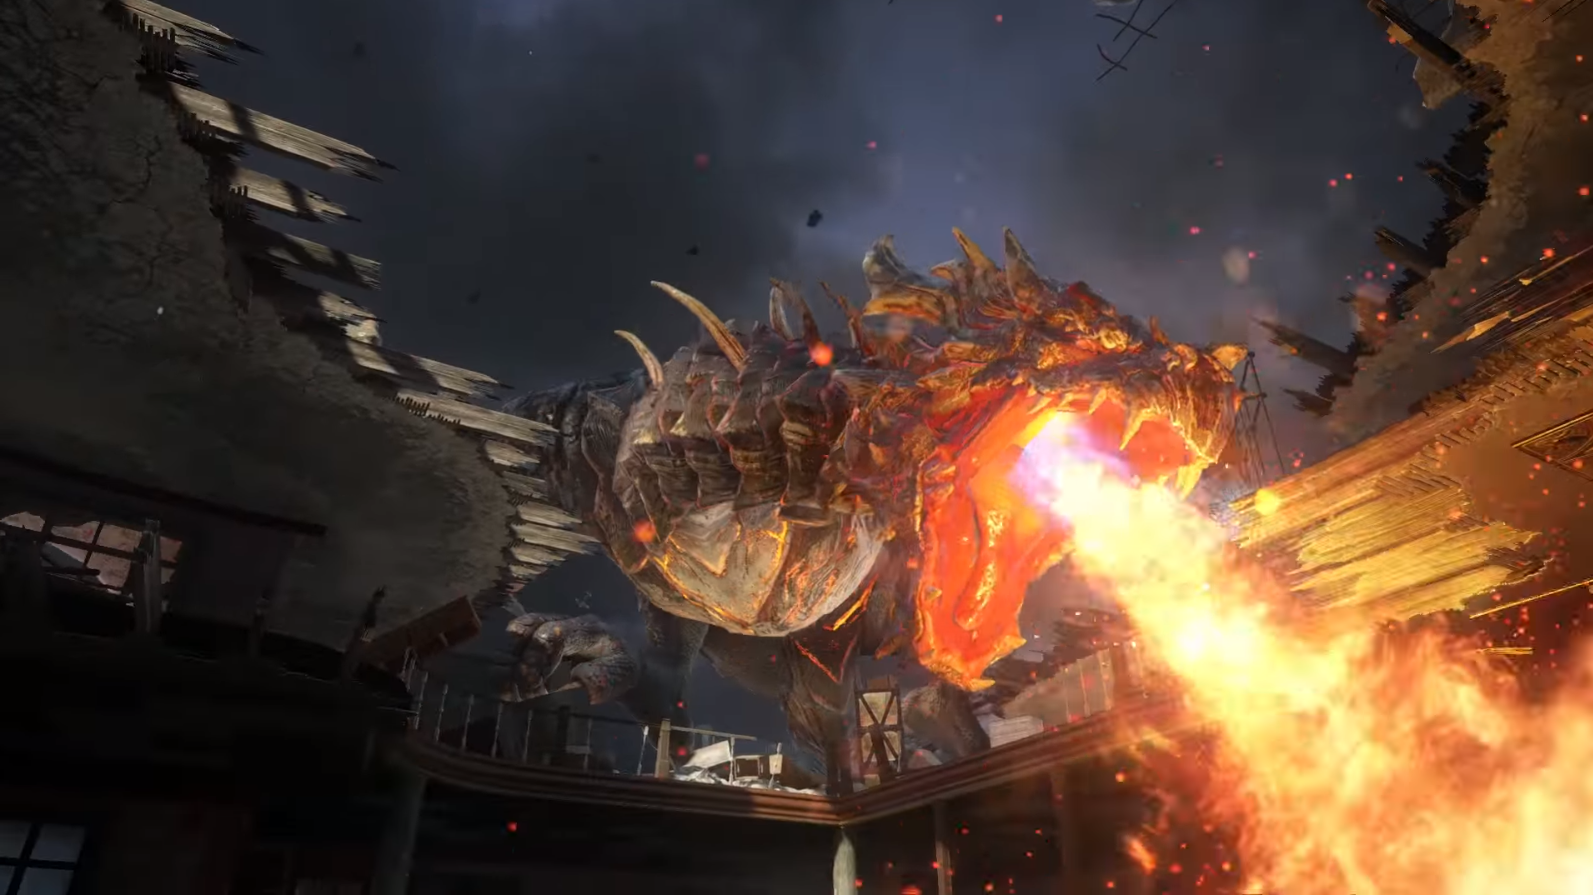 'Call of Duty: Black Ops 3' Descent DLC Features… Dragons?